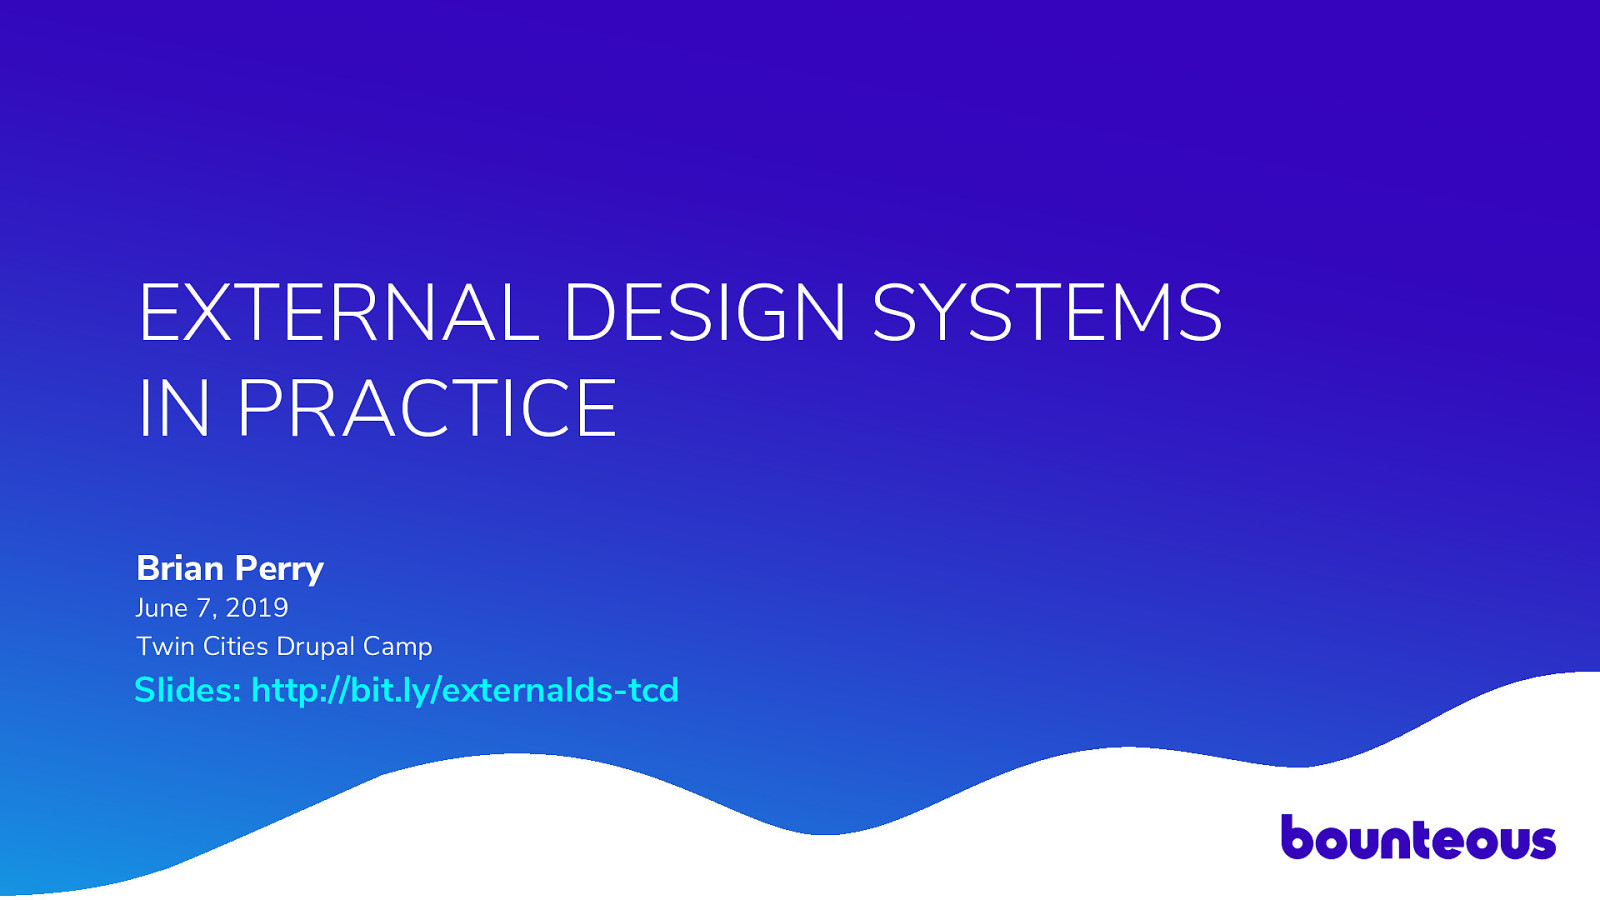 External Design Systems in Practice